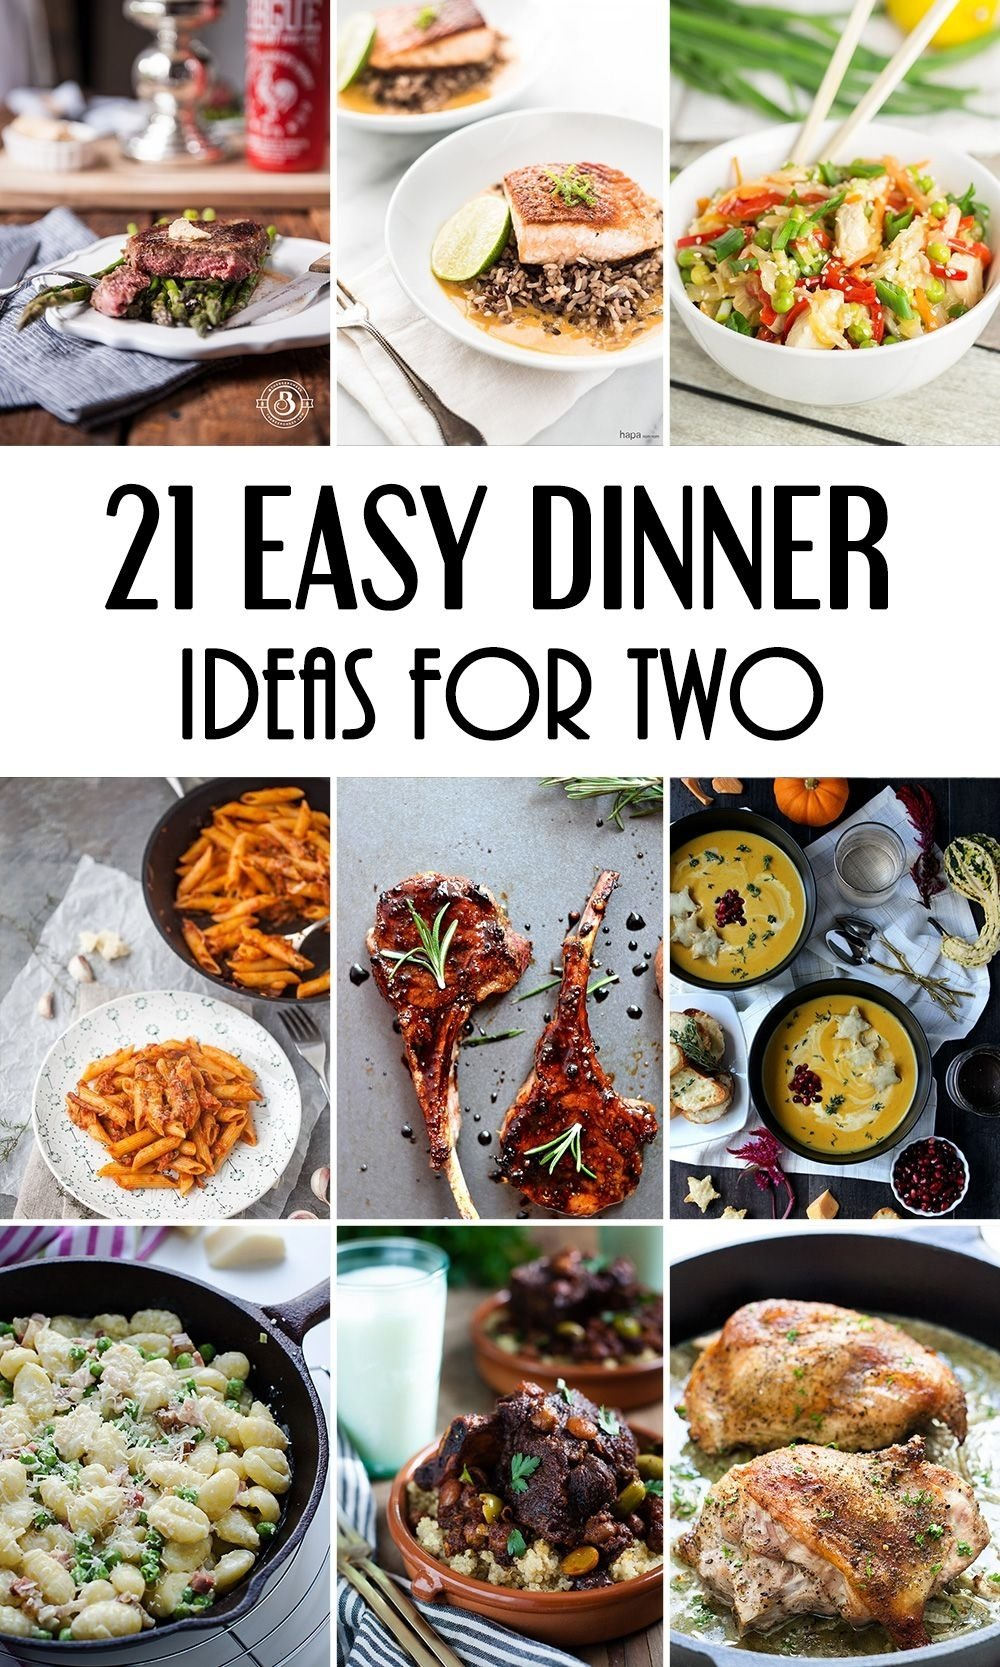 10 Amazing Dinner Ideas For Two Easy 21 easy dinner ideas for two that will impress your loved one 10 2020